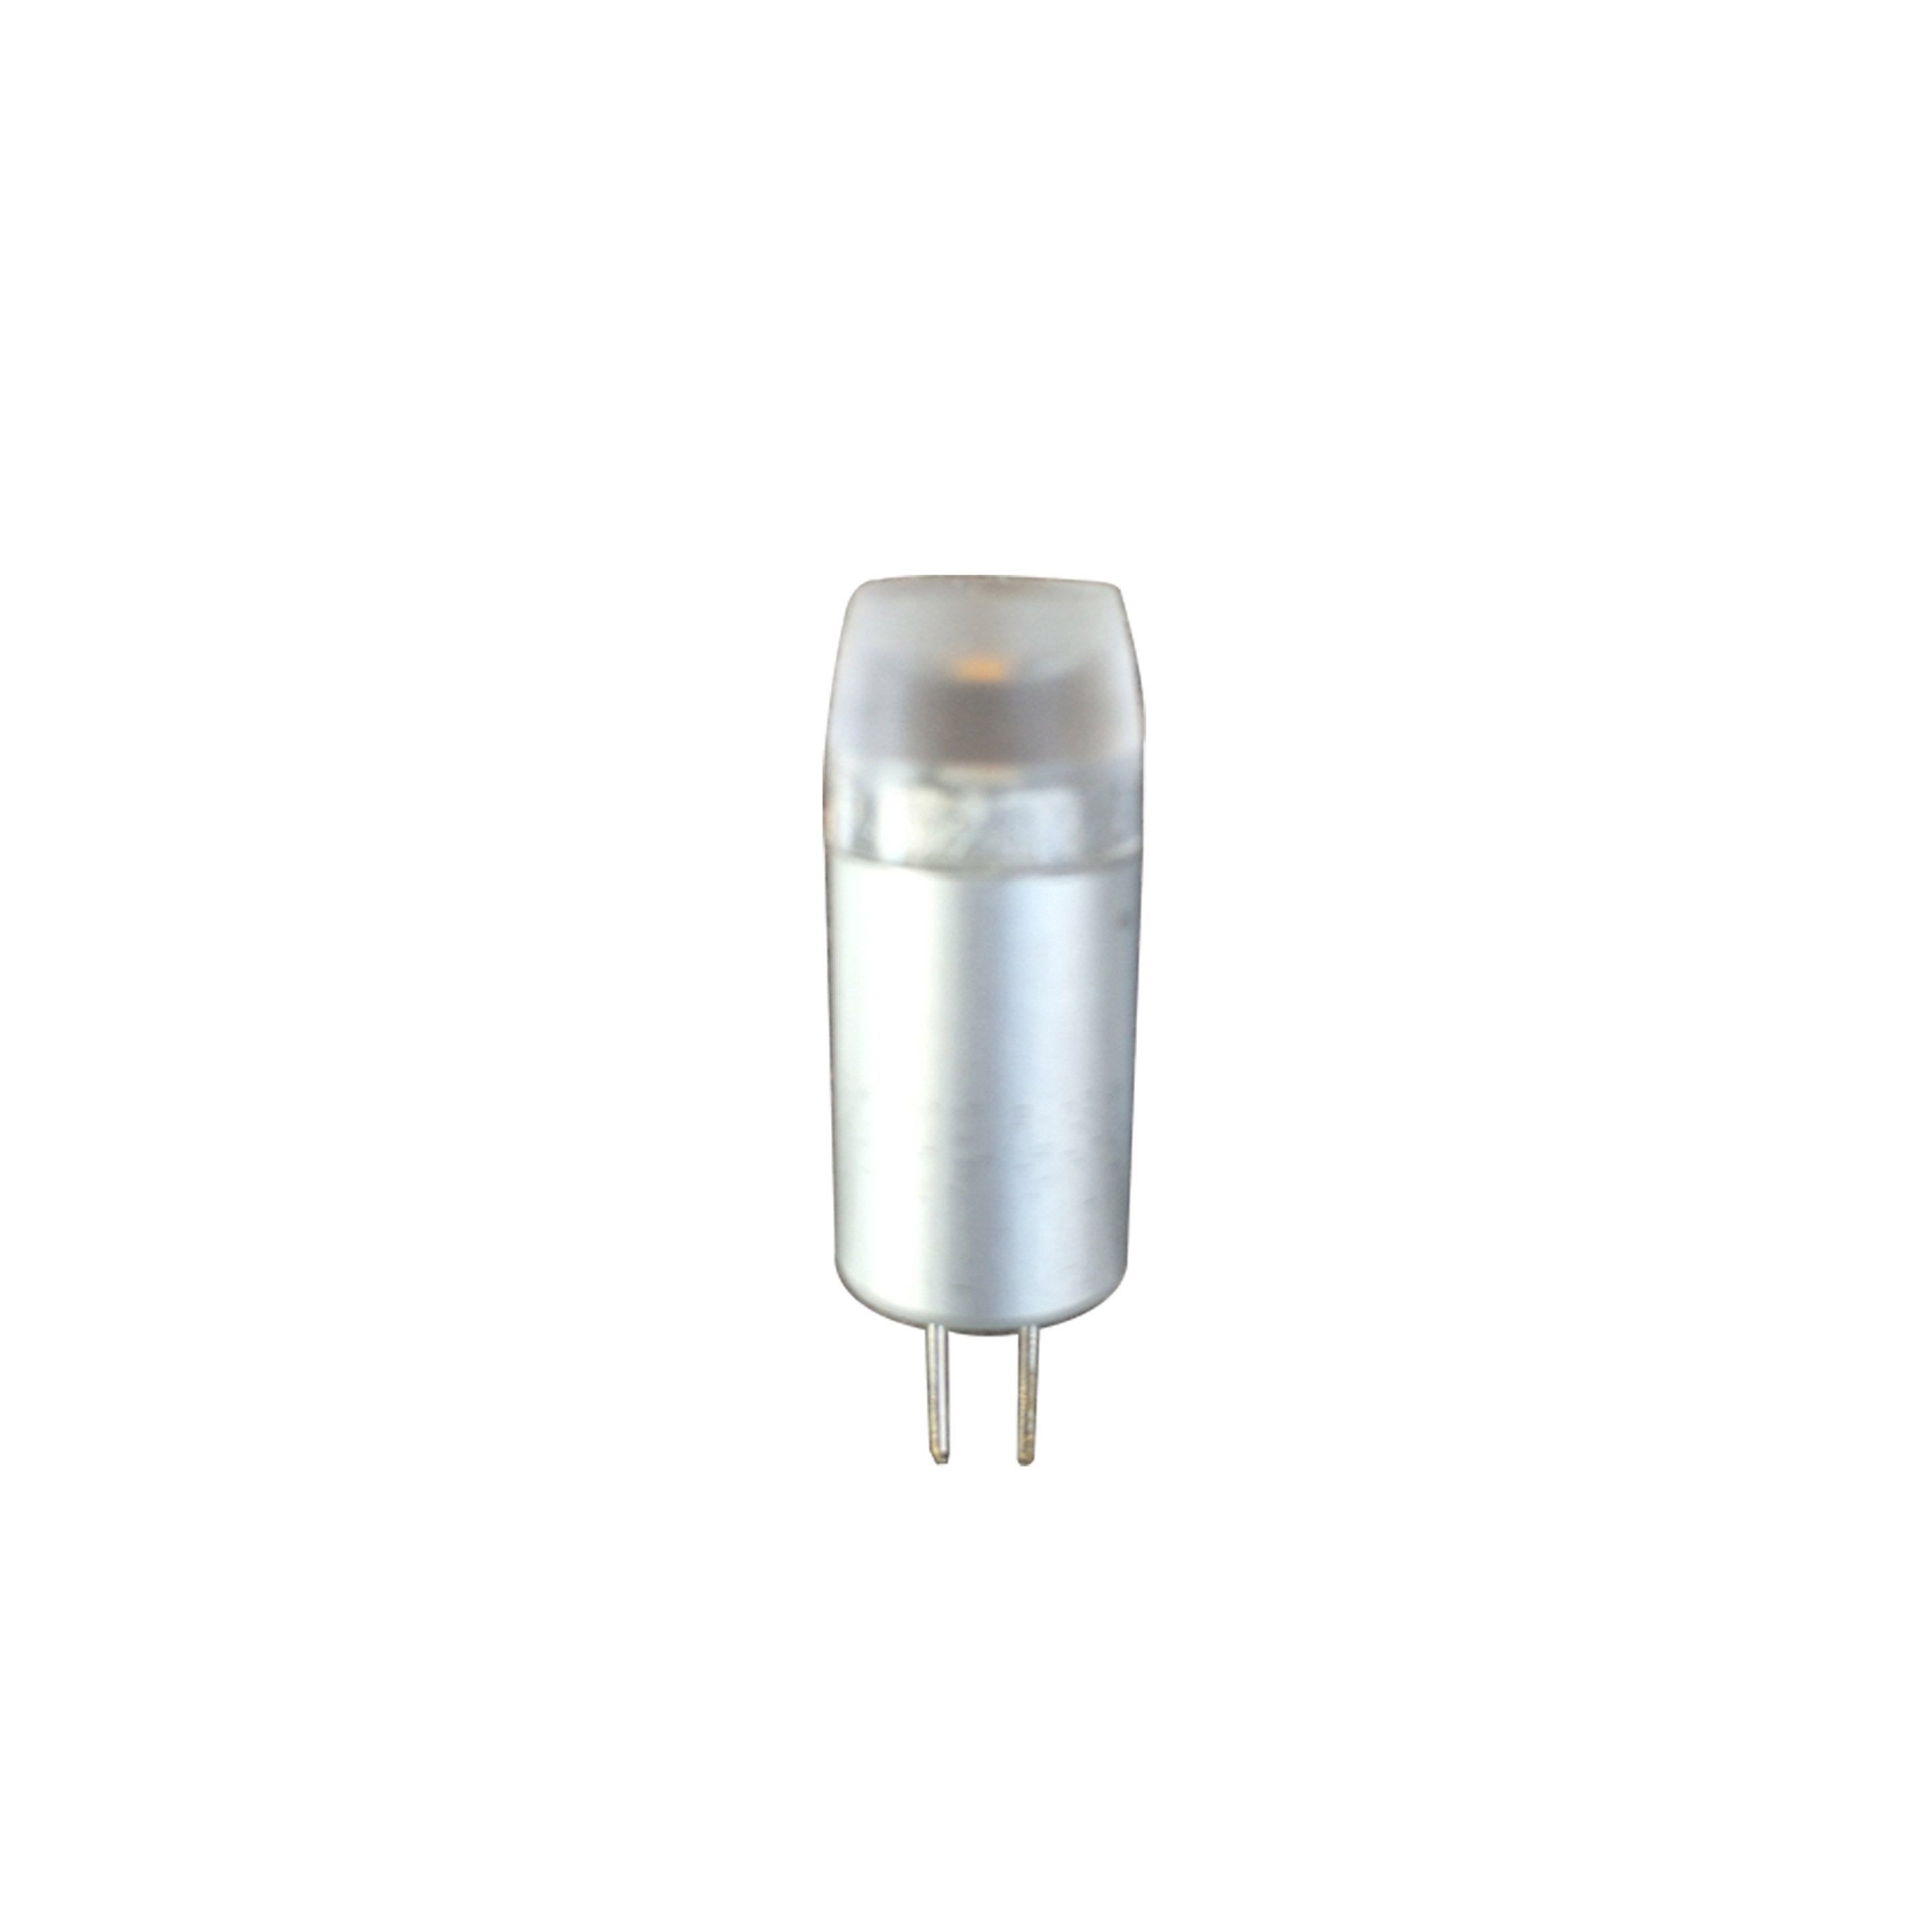 Ampoule Led A Ballast Integre Specifique G4 D14mm 1 6w 4000k 300 Lexman Ampoule Led Et Bulbes